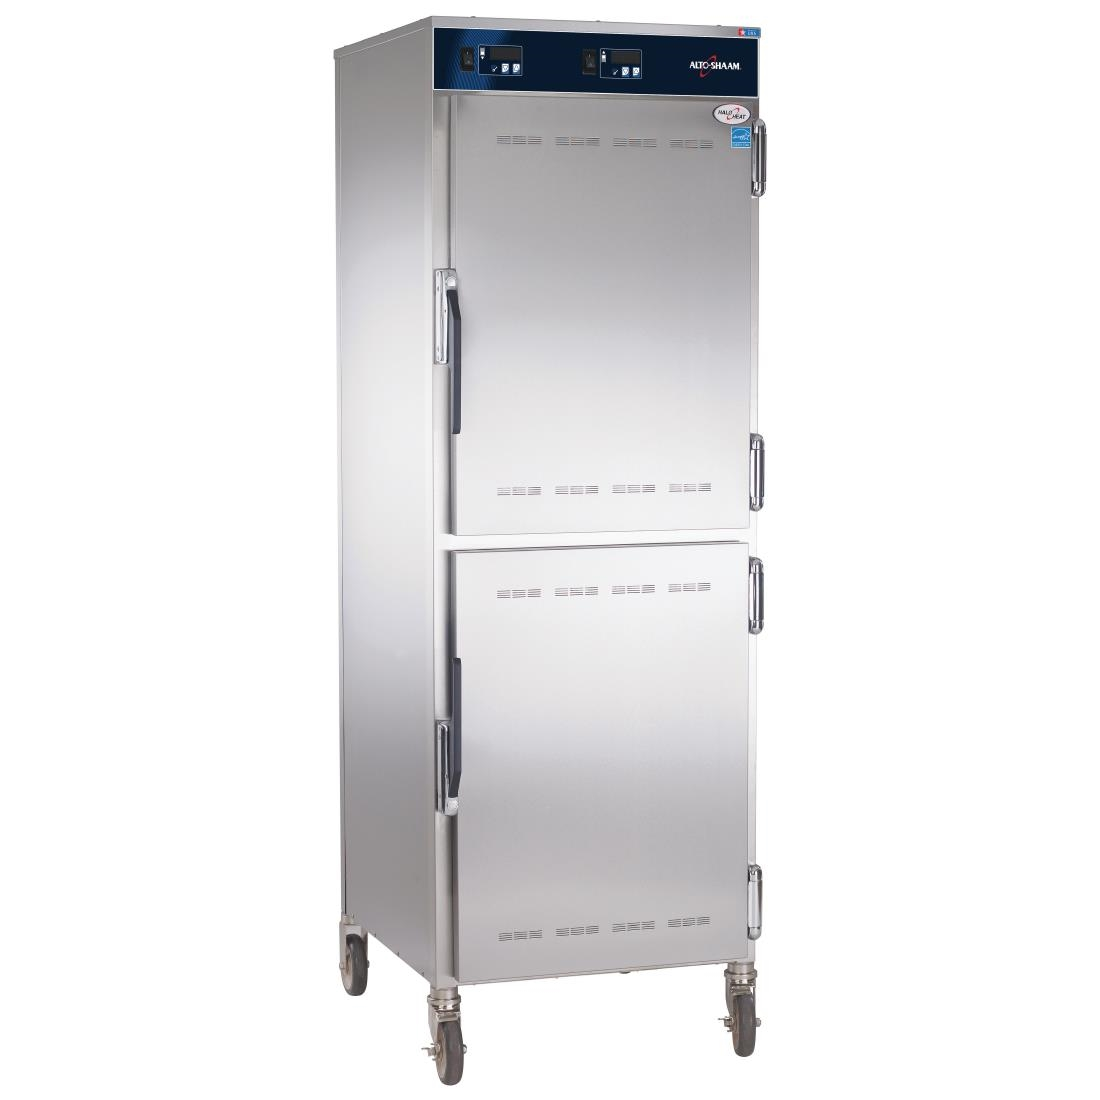 Image of Alto Shaam Heated Holding Cabinet 1200-UP/SR